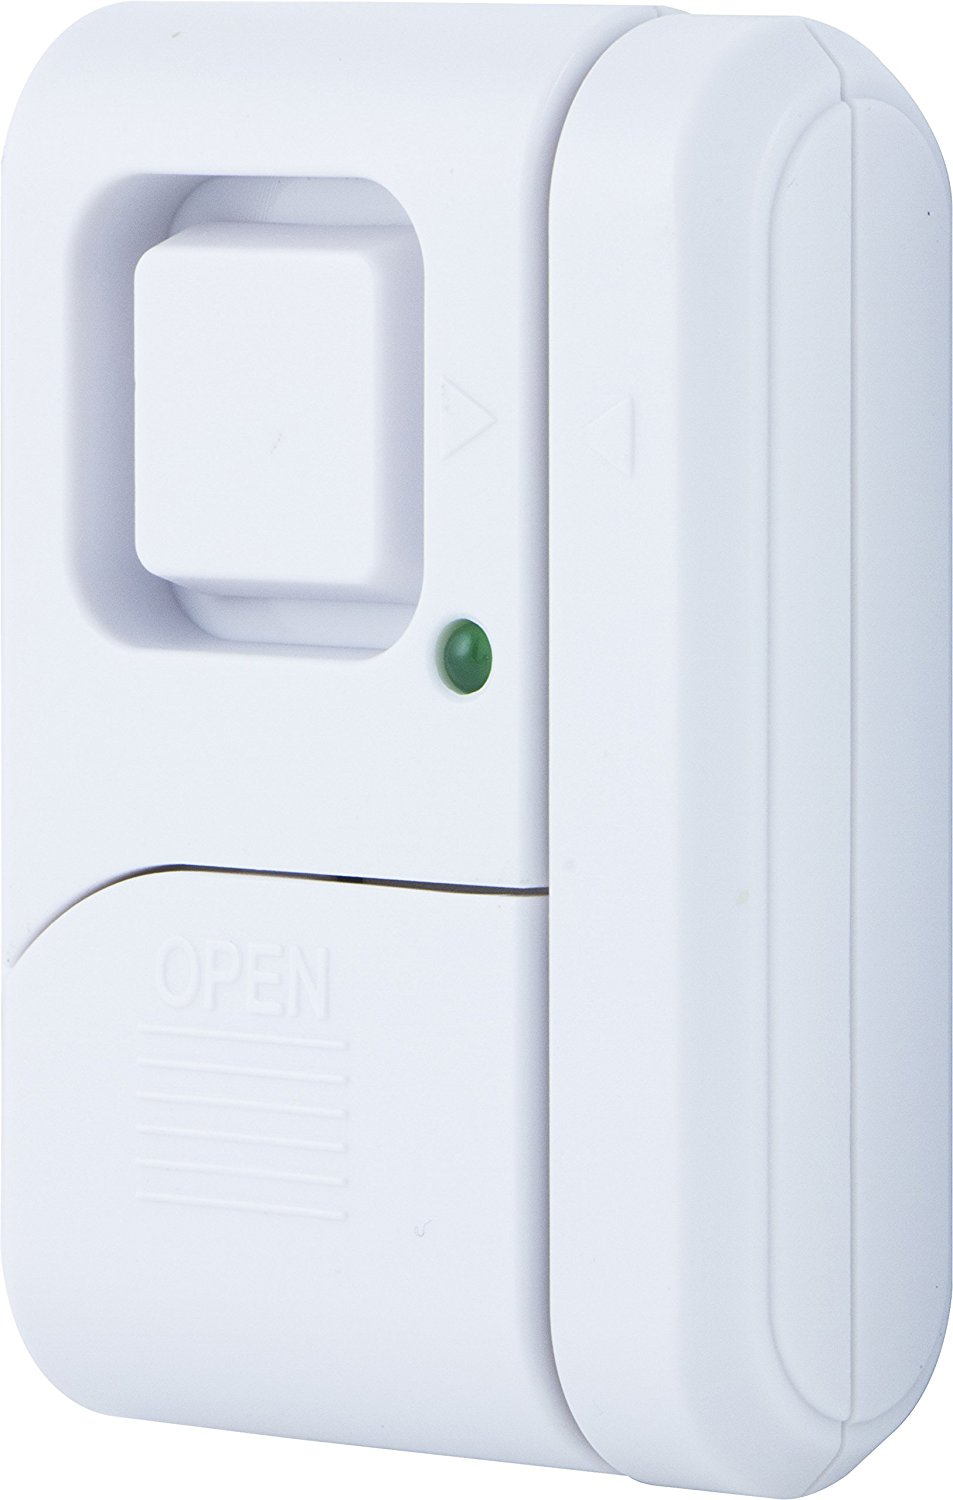 4 Mon Sliding Gl Door Weaknesses And How To Secure Them Safewise Pool Alarms